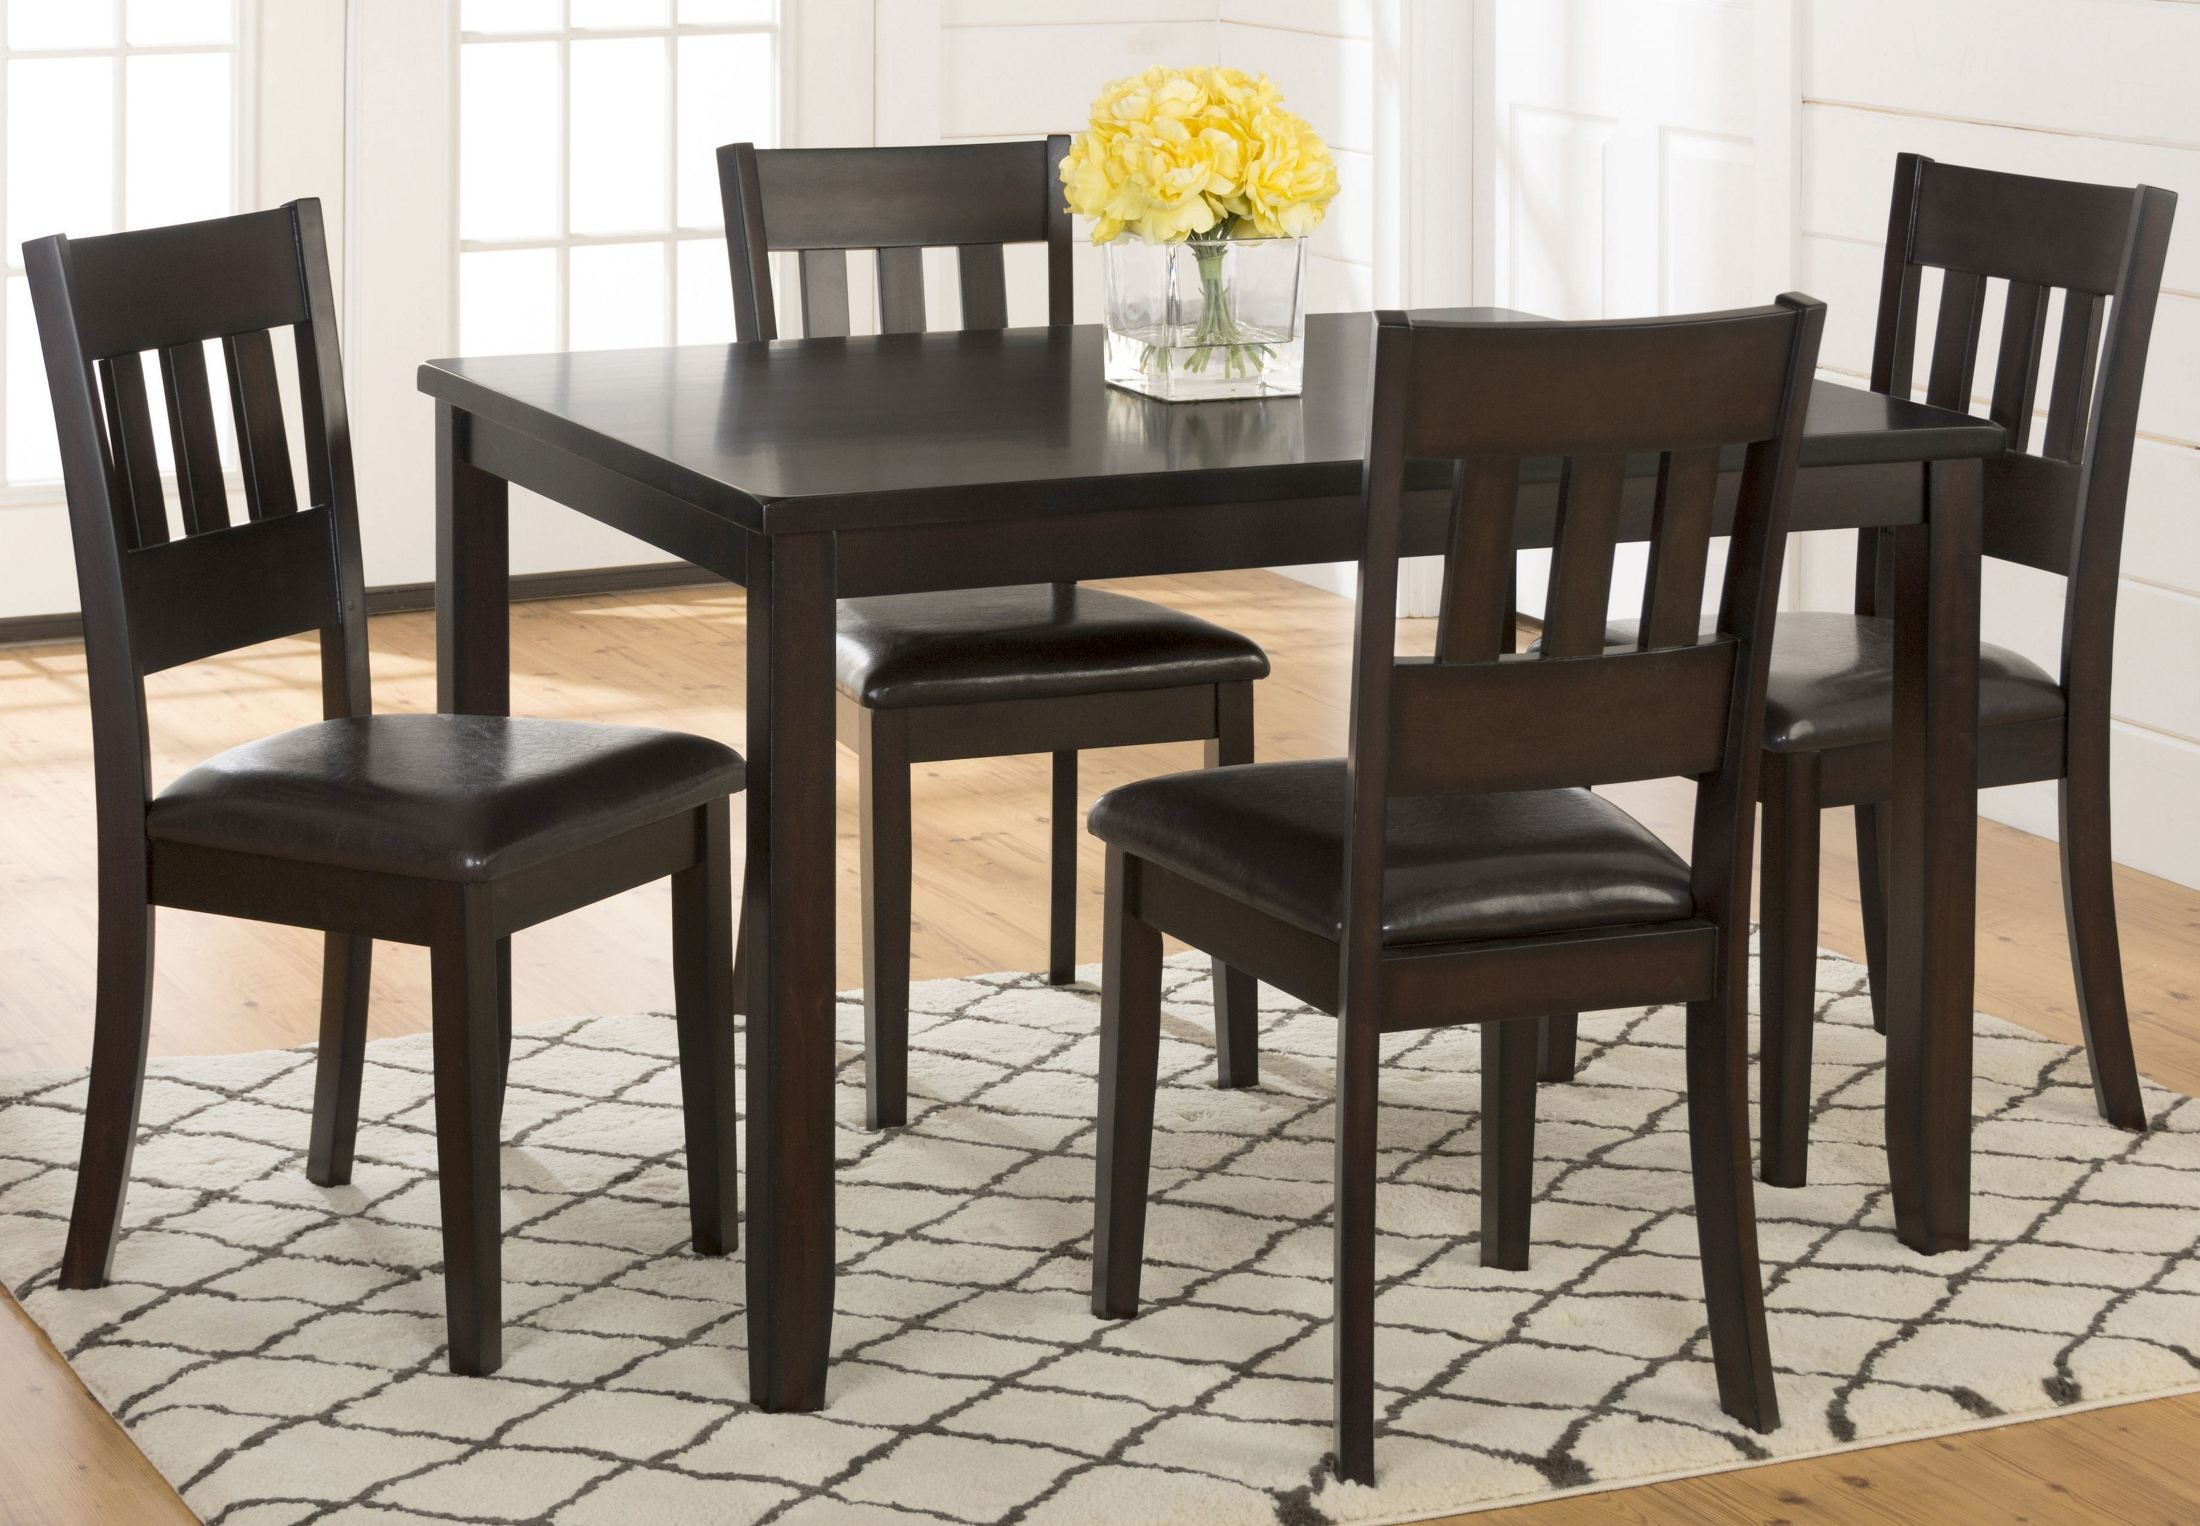 Dark rustic prairie 5 piece dining room set 922 jofran for 5 piece dining room sets